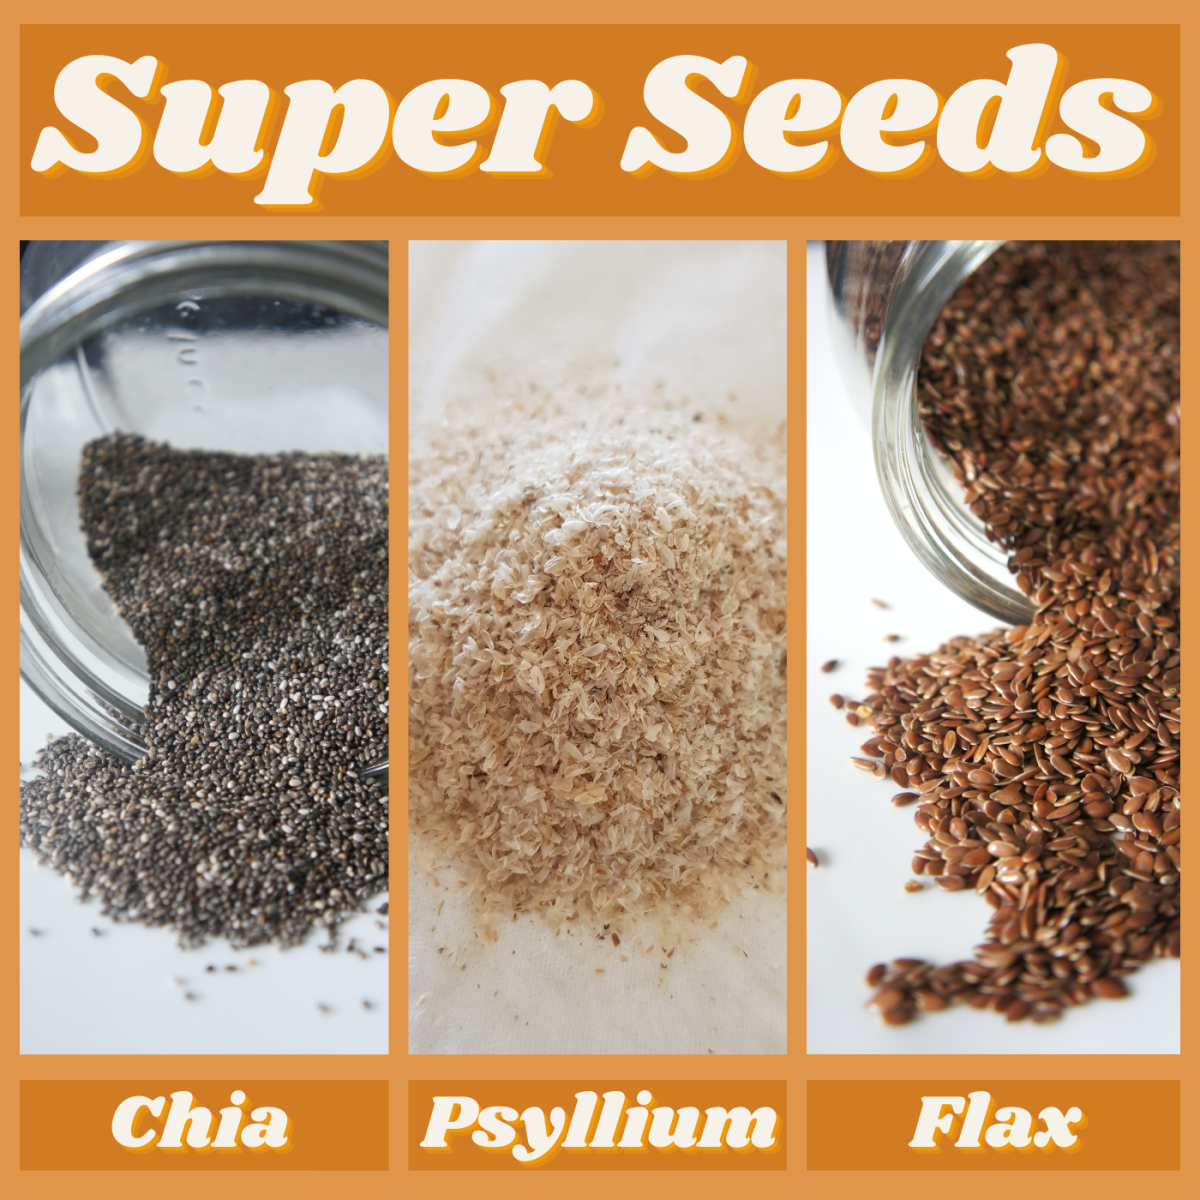 Boost your body and brain with these three super seeds—chia, psyllium, and flax.